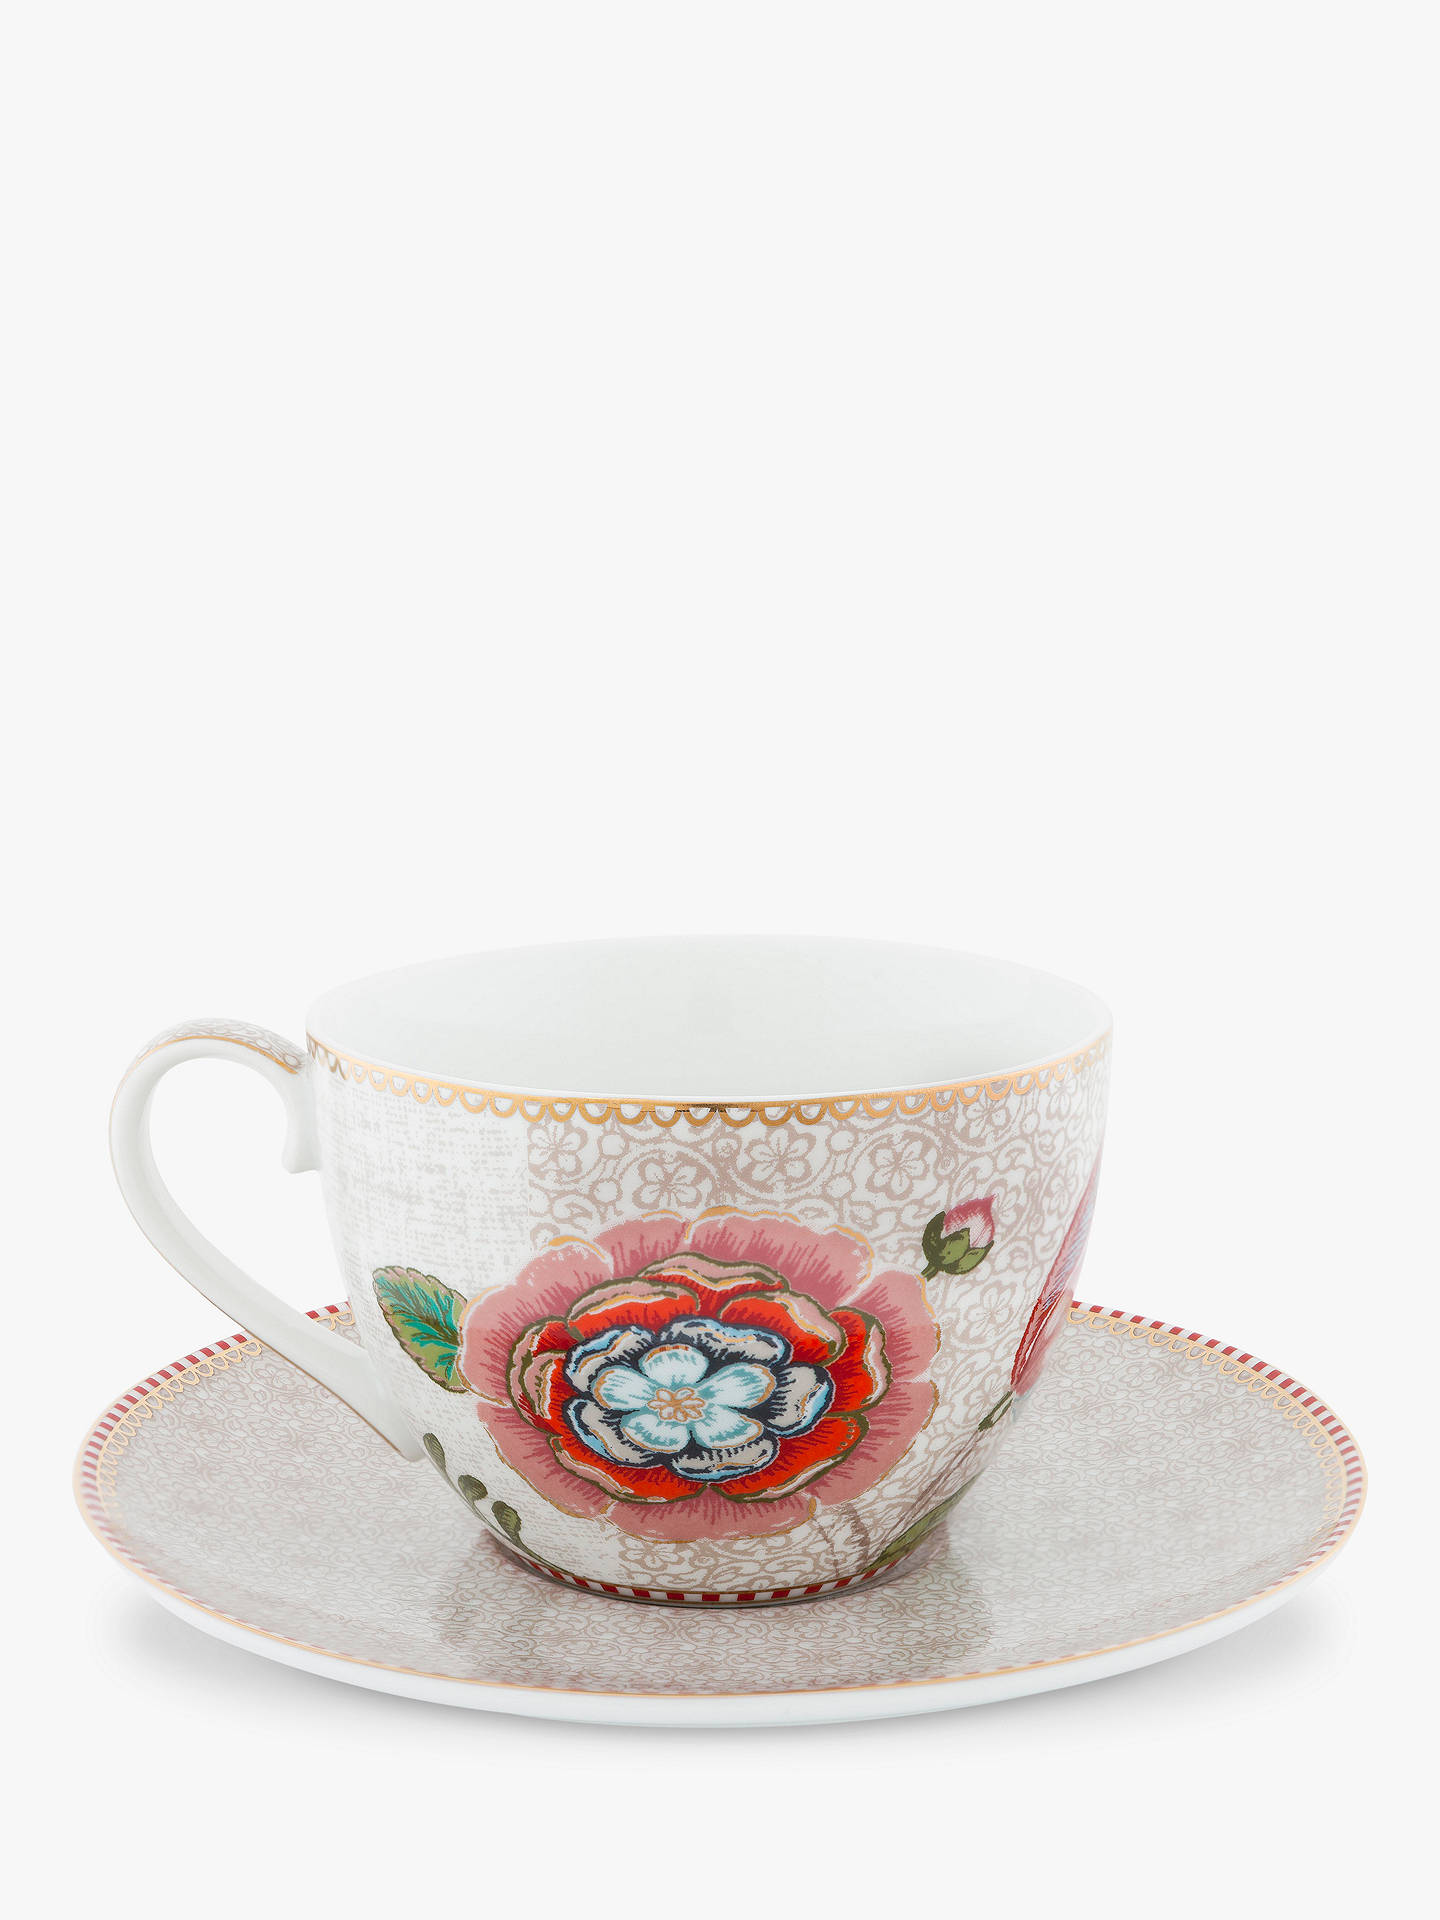 f40bf97ca3d Buy PiP Studio Spring to Life Cup and Saucer, Cream Online at johnlewis.com